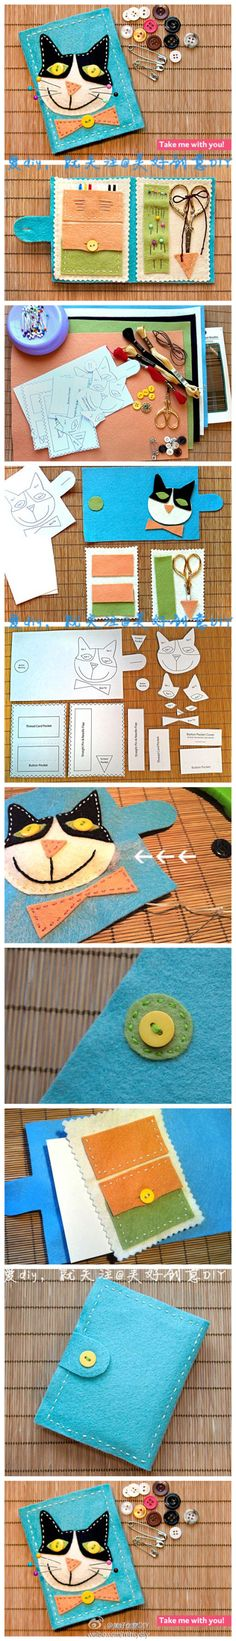 .kitty sewing case ( I don't need a sewing case, but the cat design is fun!-JLT)